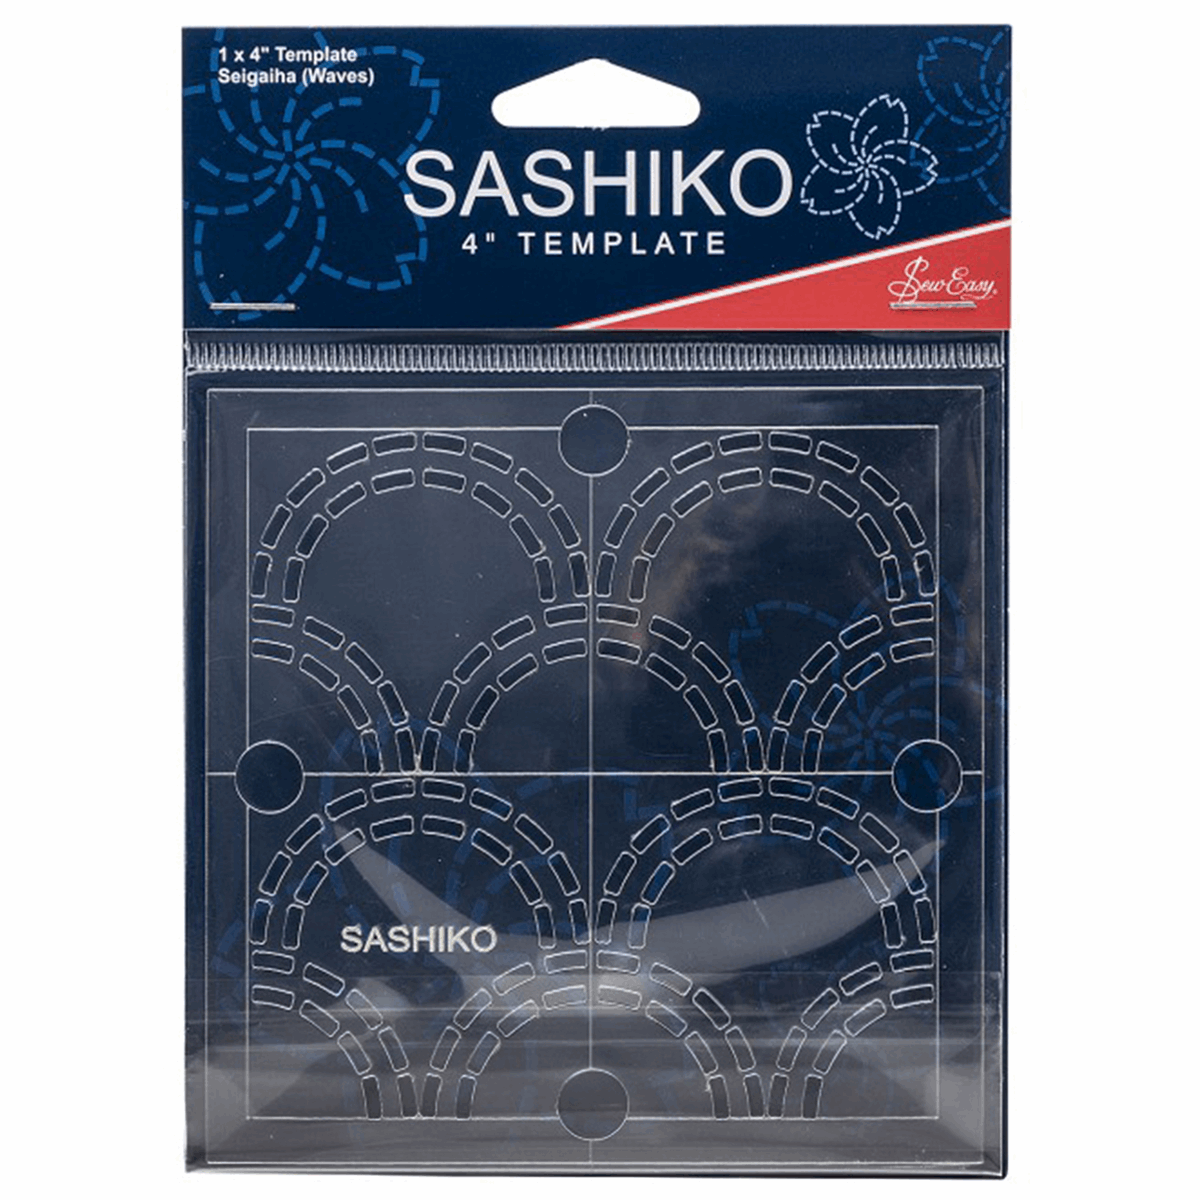 Picture of Sashiko: Template: 4in: Seigaiha (Waves)